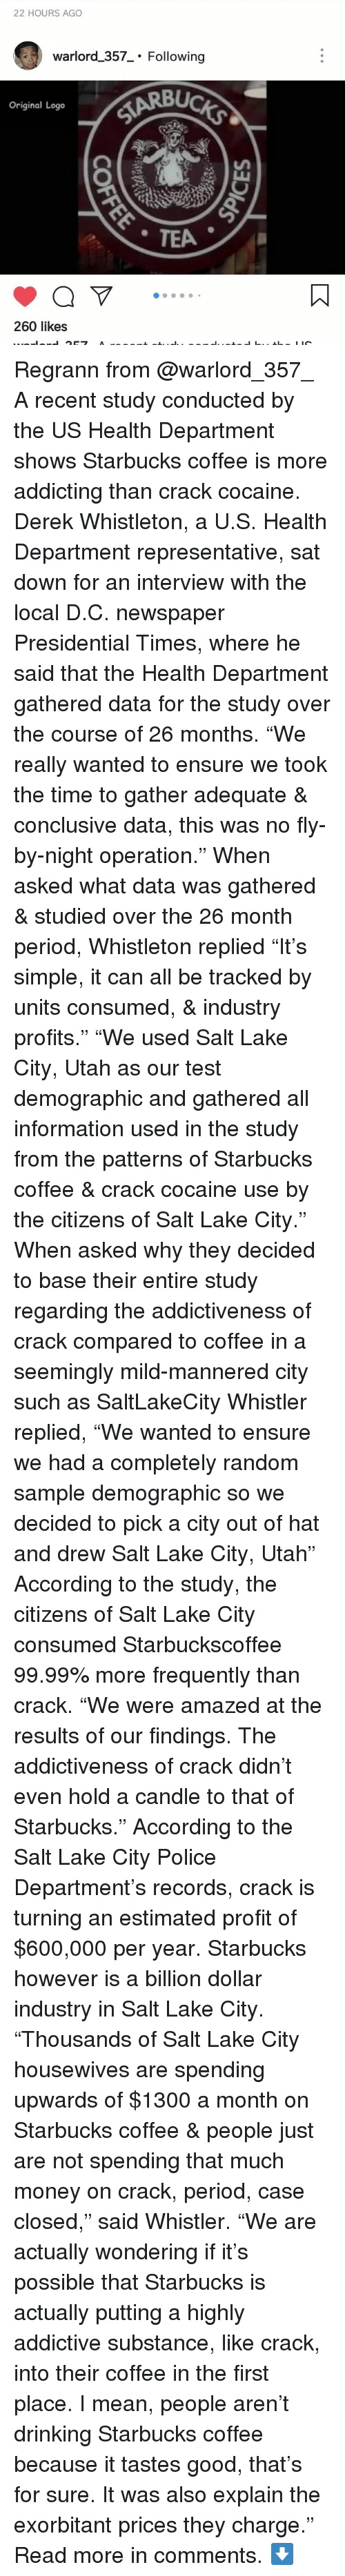 """Drinking, Memes, and Money: 22 HOURS AGO  warlord _357 Following  UC  Original Logo  260 likes Regrann from @warlord_357_ A recent study conducted by the US Health Department shows Starbucks coffee is more addicting than crack cocaine. Derek Whistleton, a U.S. Health Department representative, sat down for an interview with the local D.C. newspaper Presidential Times, where he said that the Health Department gathered data for the study over the course of 26 months. """"We really wanted to ensure we took the time to gather adequate & conclusive data, this was no fly-by-night operation."""" When asked what data was gathered & studied over the 26 month period, Whistleton replied """"It's simple, it can all be tracked by units consumed, & industry profits."""" """"We used Salt Lake City, Utah as our test demographic and gathered all information used in the study from the patterns of Starbucks coffee & crack cocaine use by the citizens of Salt Lake City."""" When asked why they decided to base their entire study regarding the addictiveness of crack compared to coffee in a seemingly mild-mannered city such as SaltLakeCity Whistler replied, """"We wanted to ensure we had a completely random sample demographic so we decided to pick a city out of hat and drew Salt Lake City, Utah"""" According to the study, the citizens of Salt Lake City consumed Starbuckscoffee 99.99% more frequently than crack. """"We were amazed at the results of our findings. The addictiveness of crack didn't even hold a candle to that of Starbucks."""" According to the Salt Lake City Police Department's records, crack is turning an estimated profit of $600,000 per year. Starbucks however is a billion dollar industry in Salt Lake City. """"Thousands of Salt Lake City housewives are spending upwards of $1300 a month on Starbucks coffee & people just are not spending that much money on crack, period, case closed,"""" said Whistler. """"We are actually wondering if it's possible that Starbucks is actually putting a highly addictive substance, li"""